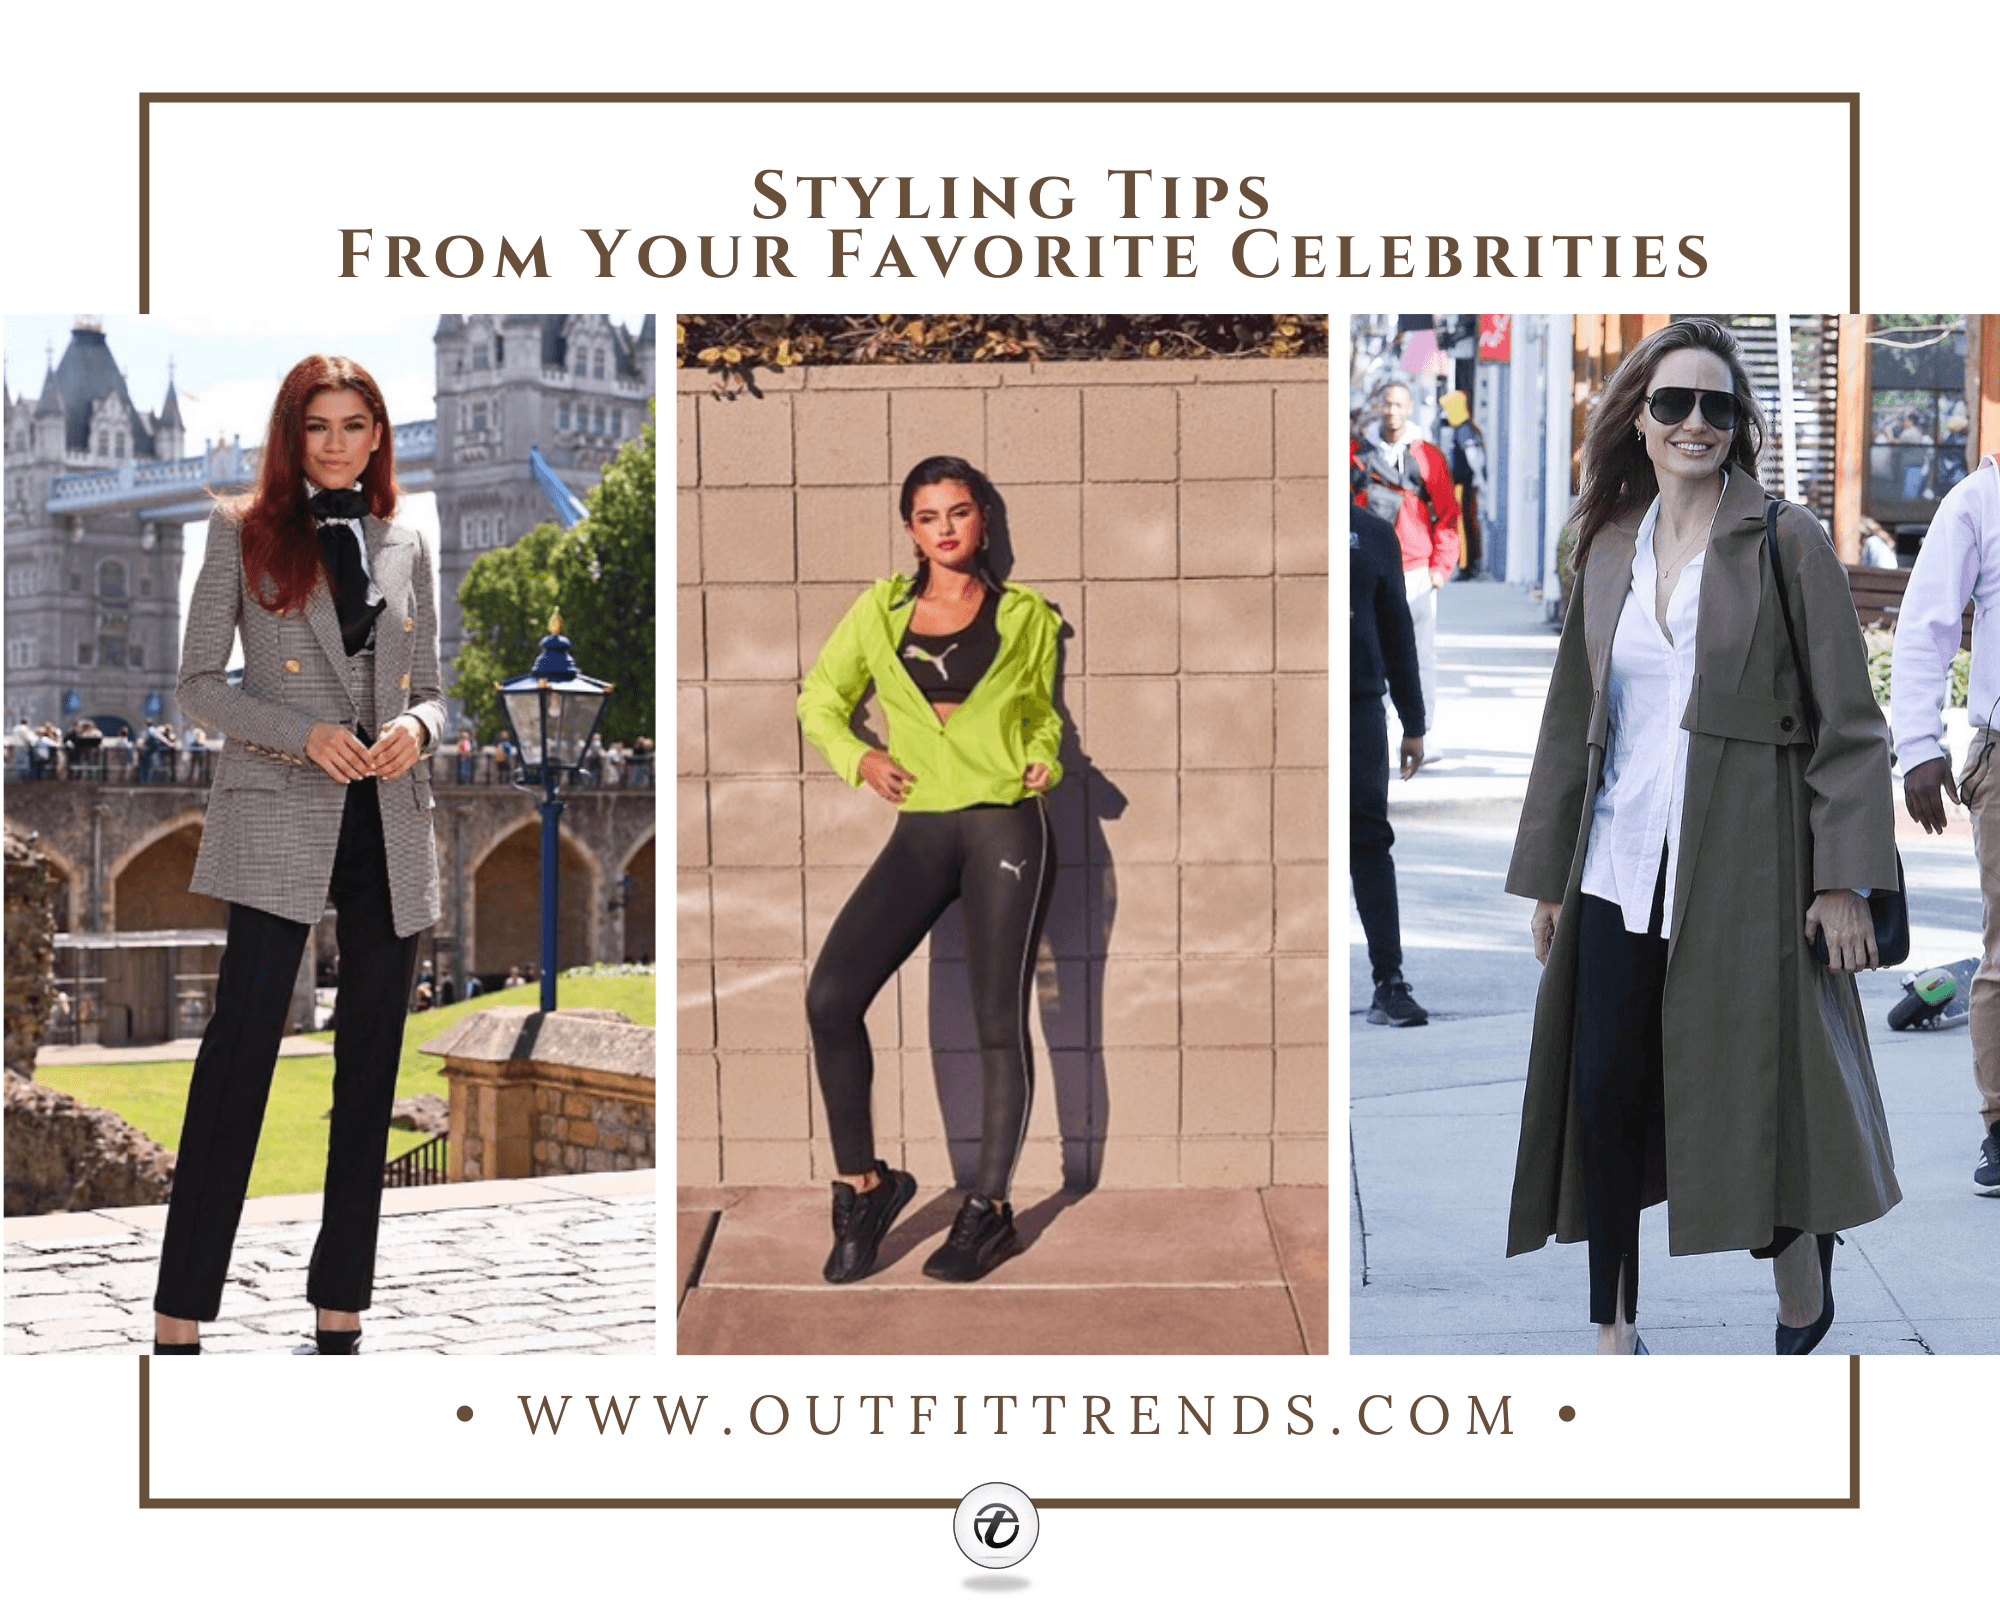 How to Dress Like a Celebrity -15 Celebrity Styles & Outfits